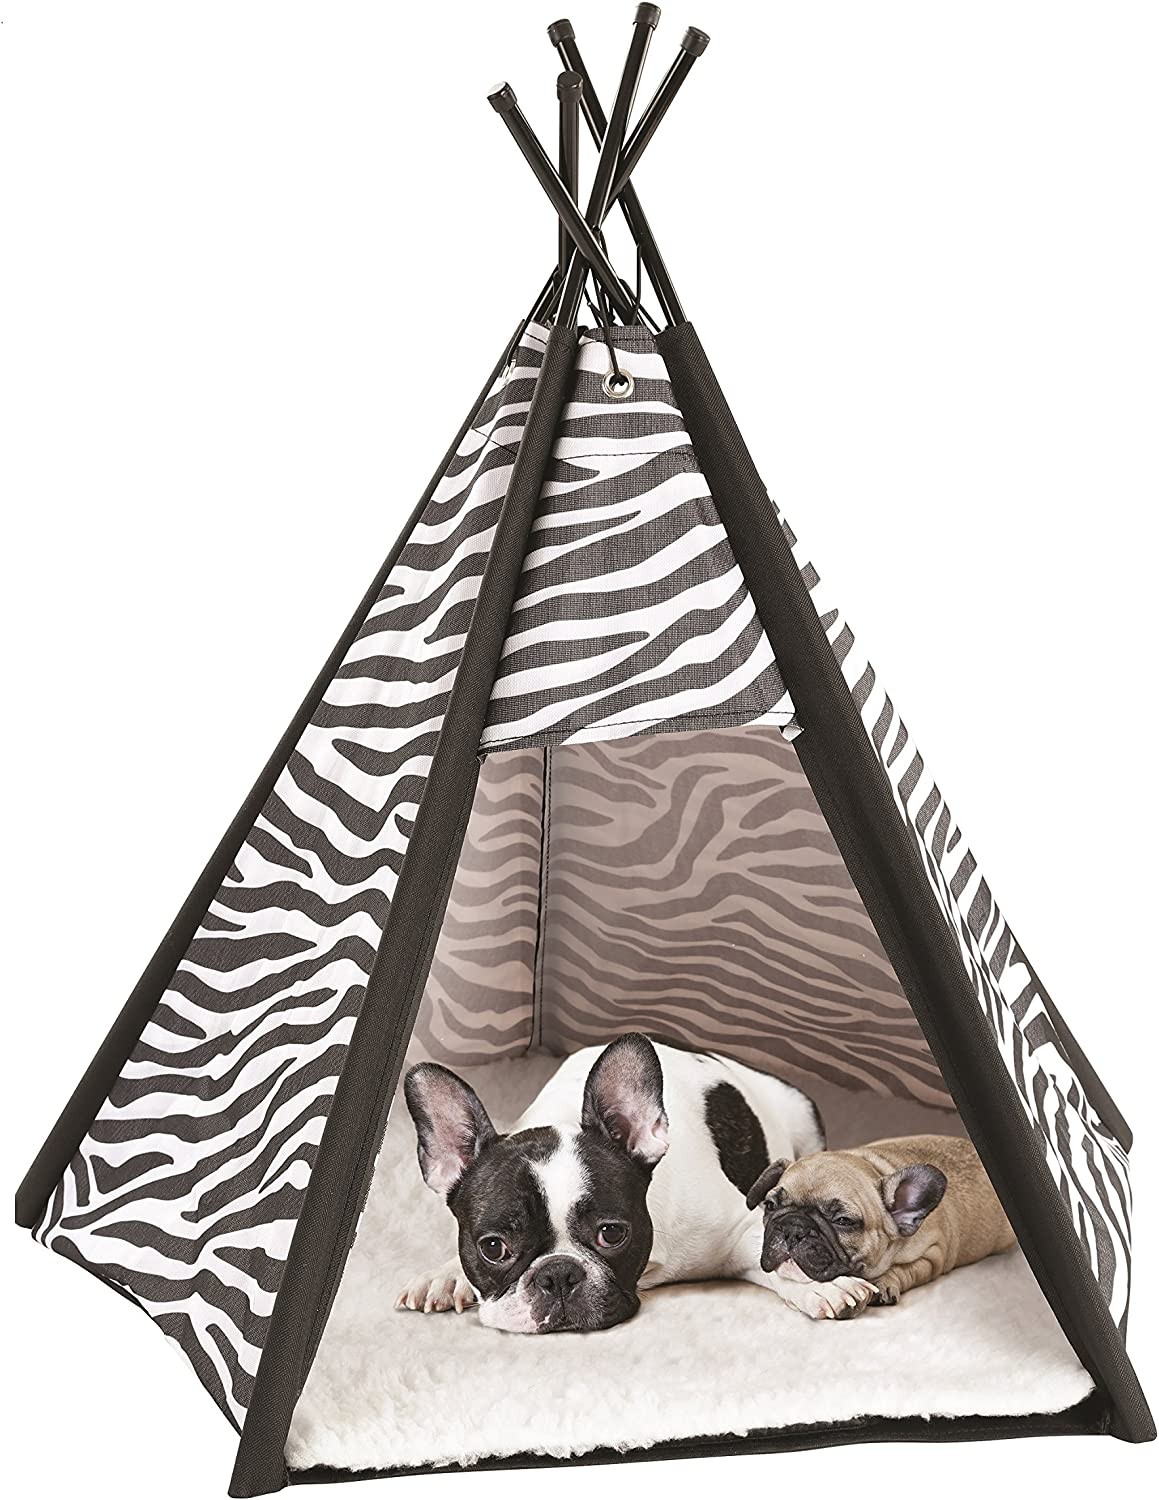 Etna Portable Lightweight Teepee Pet Tent  Warm and Cozy with Soft Bed Padding for Dogs, Cats, Puppies, and Rabbits. Indoor Outdoor, Office, Home.